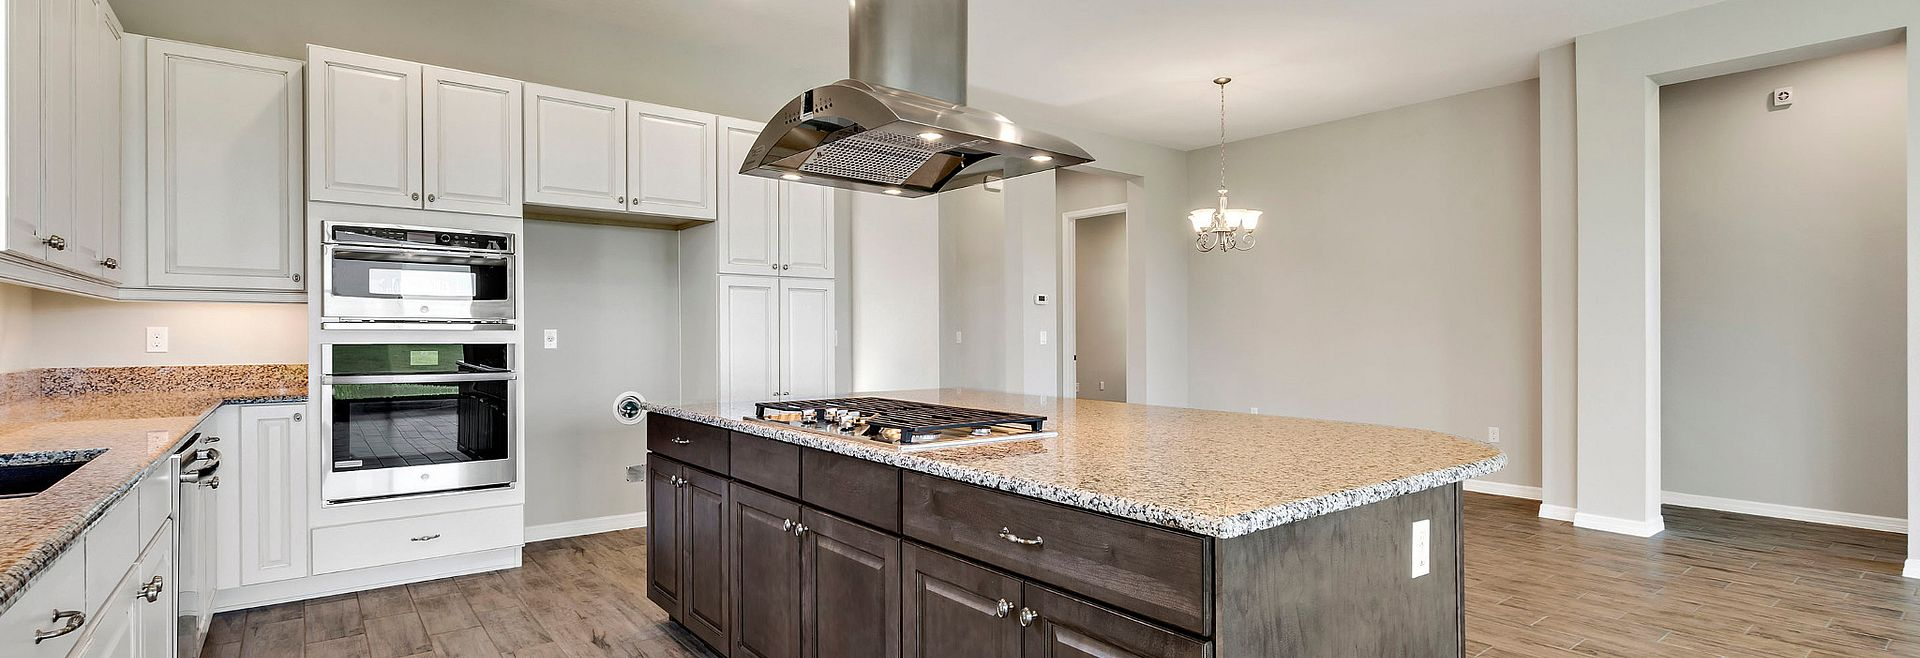 Trilogy Orlando Imagine Quick Move-In Kitchen